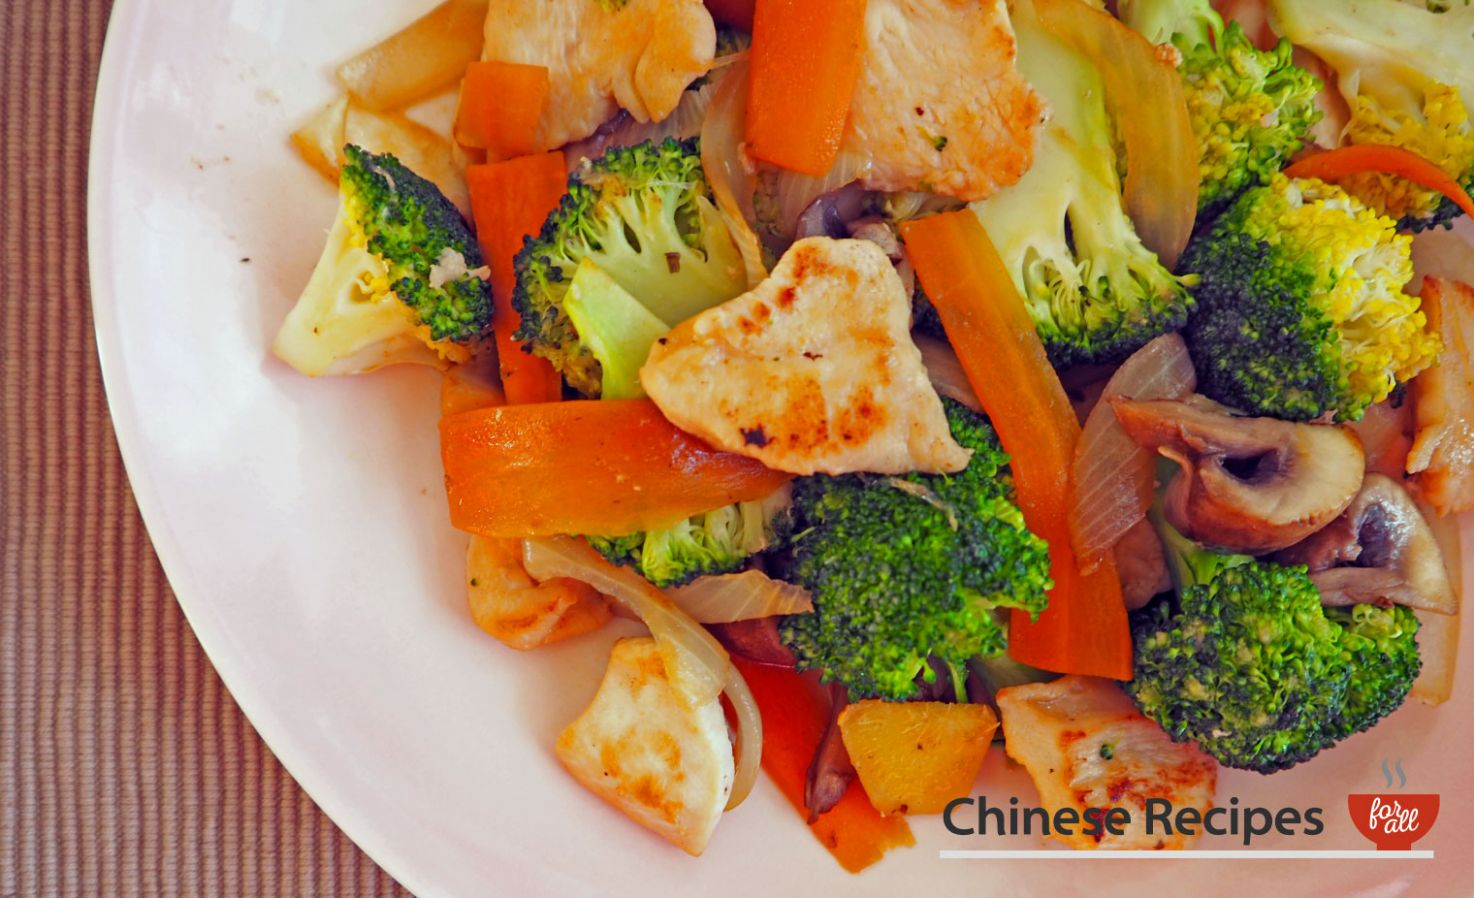 Chicken and Broccoli Vegetable Stir Fry - Recipes All Vegetable